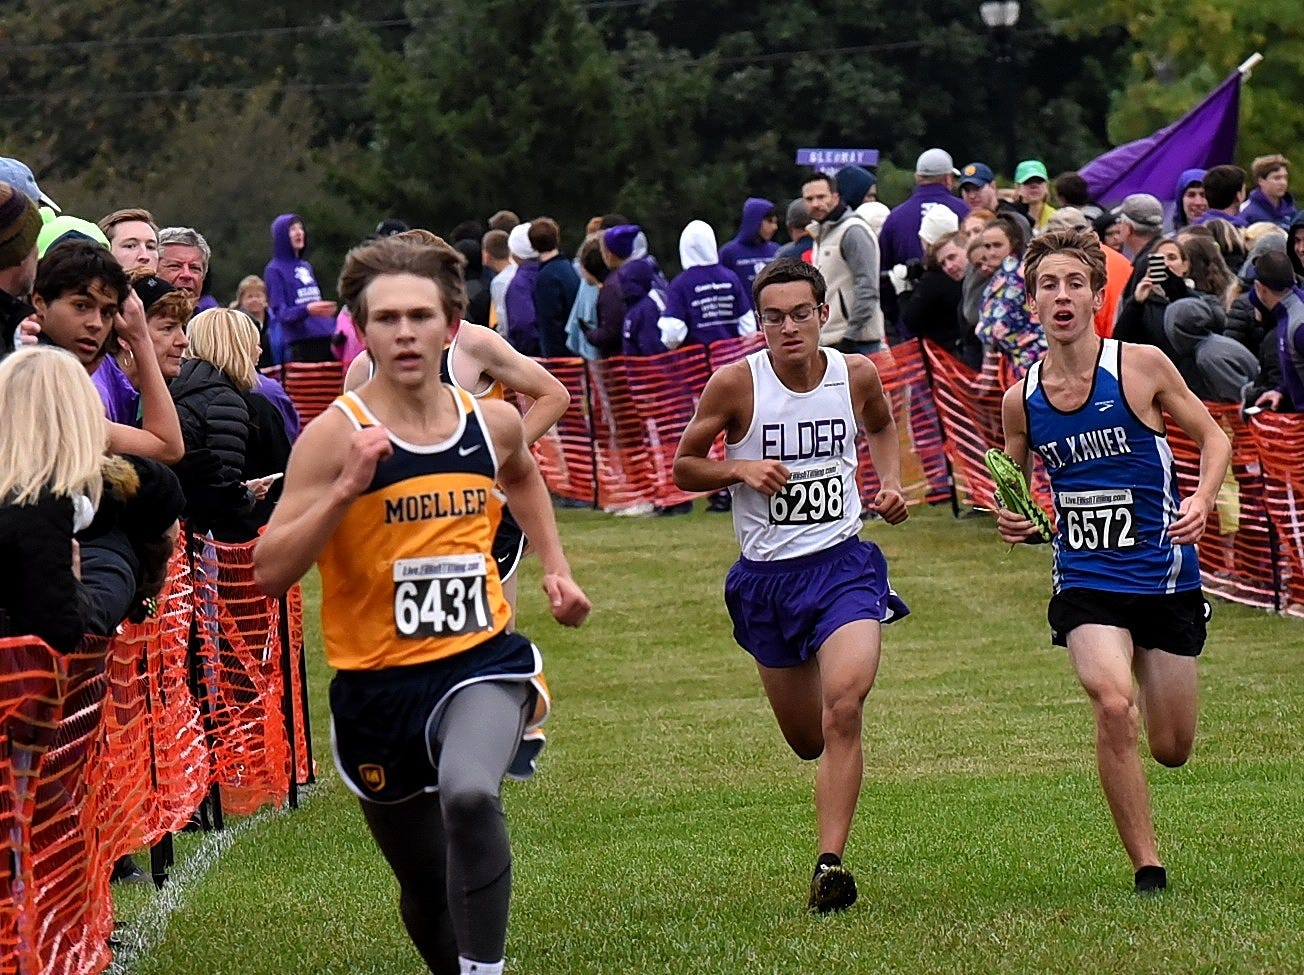 Moeller's Nicholas Eiben, Elder's Jacob Cowans and William Harmeyer of St. Xavier head down the homestretch at the 2018 GCL/GGCL Cross Country Championships, October 13, 2018.